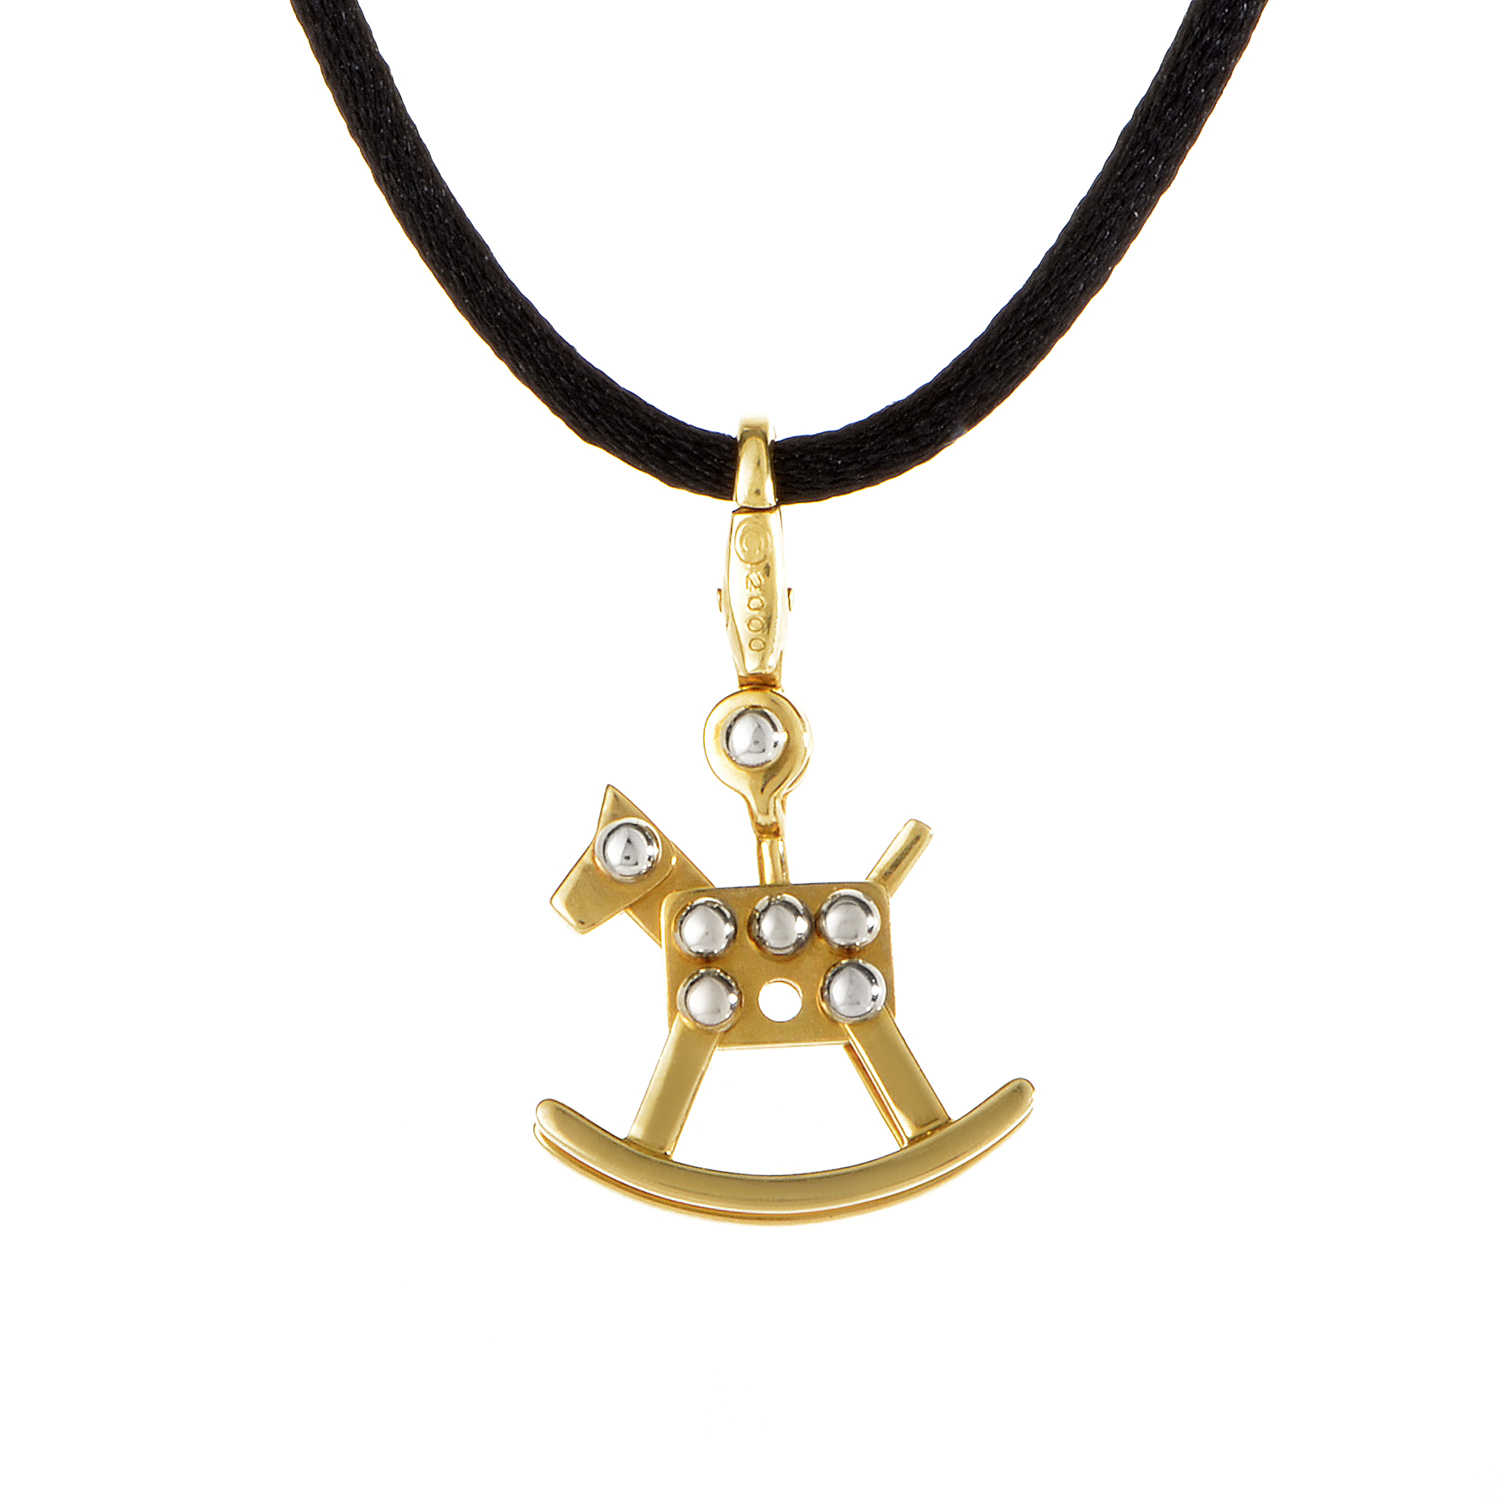 Cartier 18K Multi-Tone Gold Rocking Horse Cord Necklace